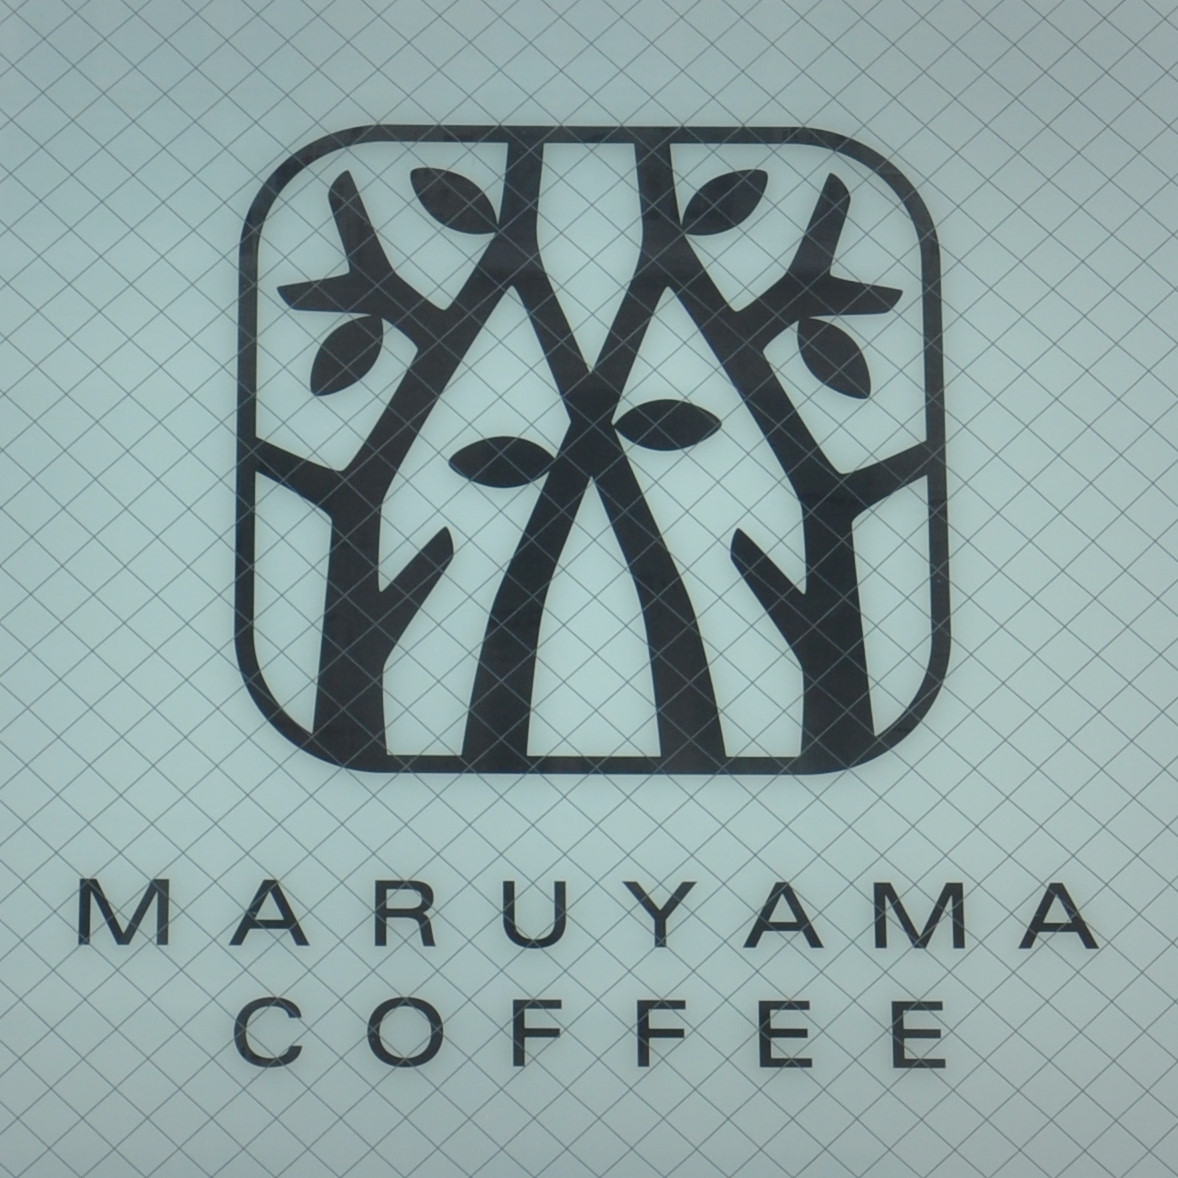 Detail from the sign above the door of Maruyama Coffee's branch in Nishi Azabu